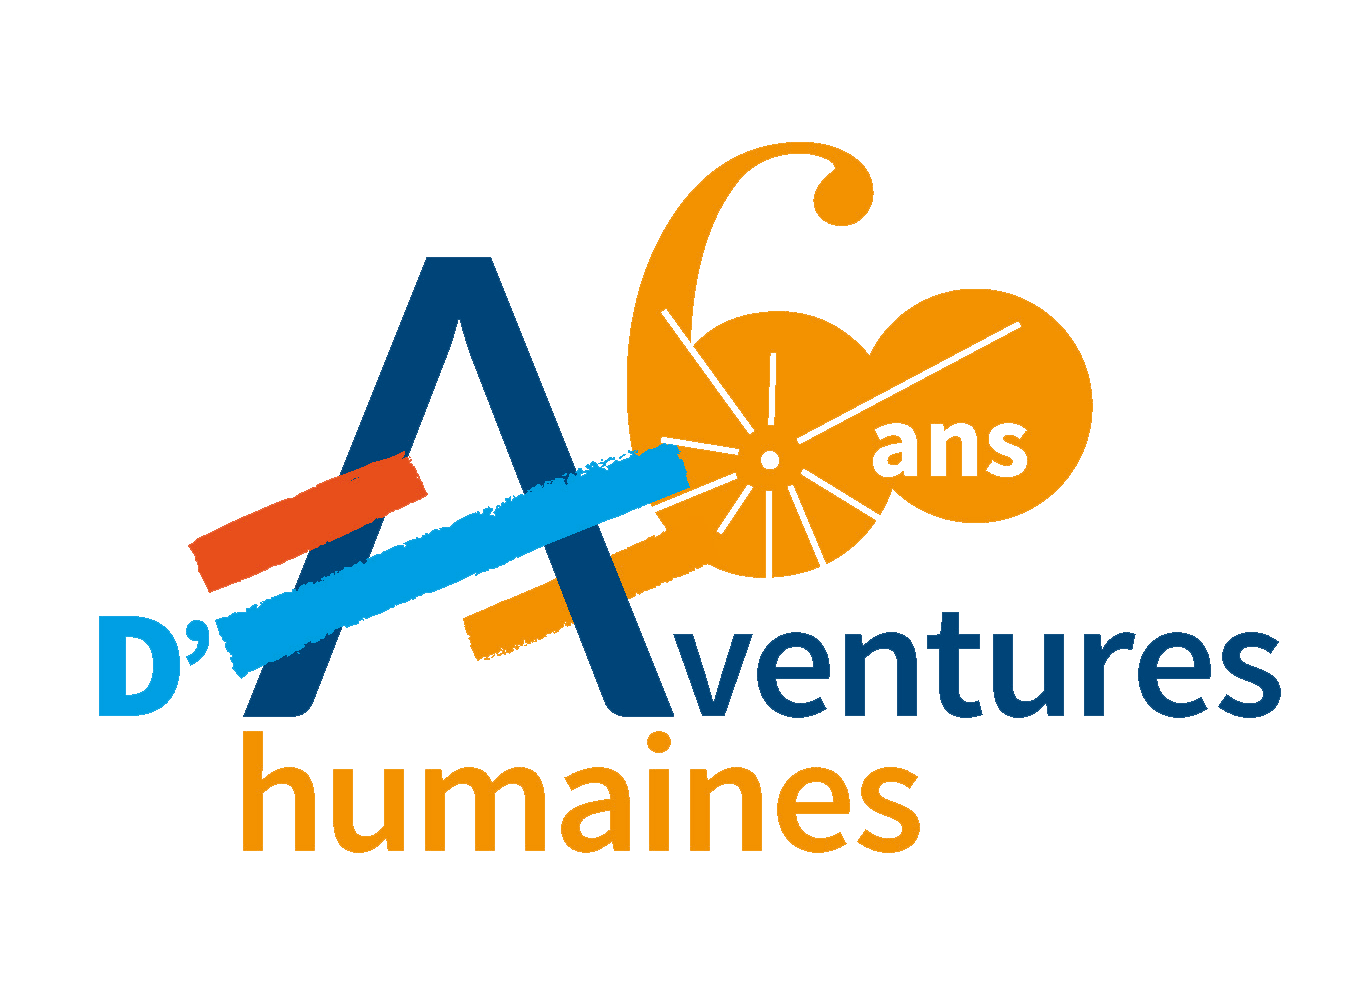 Alefpa logo 60 ans d'aventures humaines